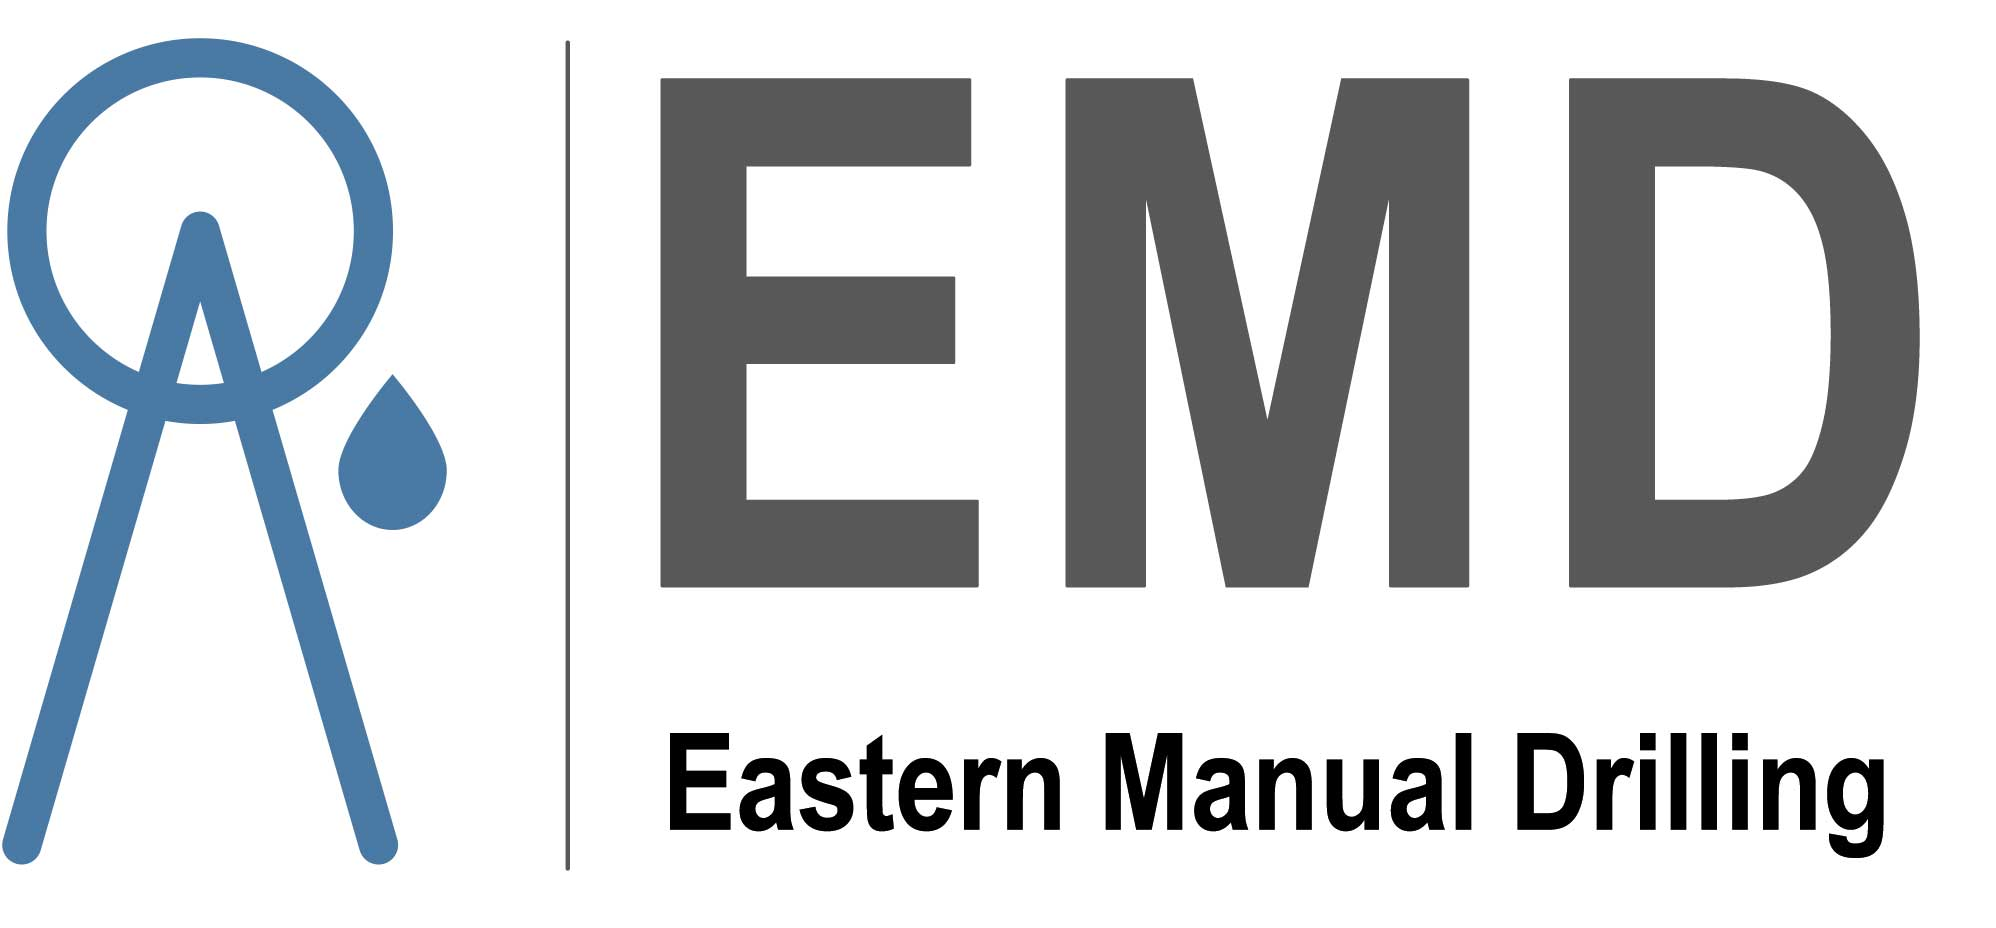 Eastern Manual Drilling